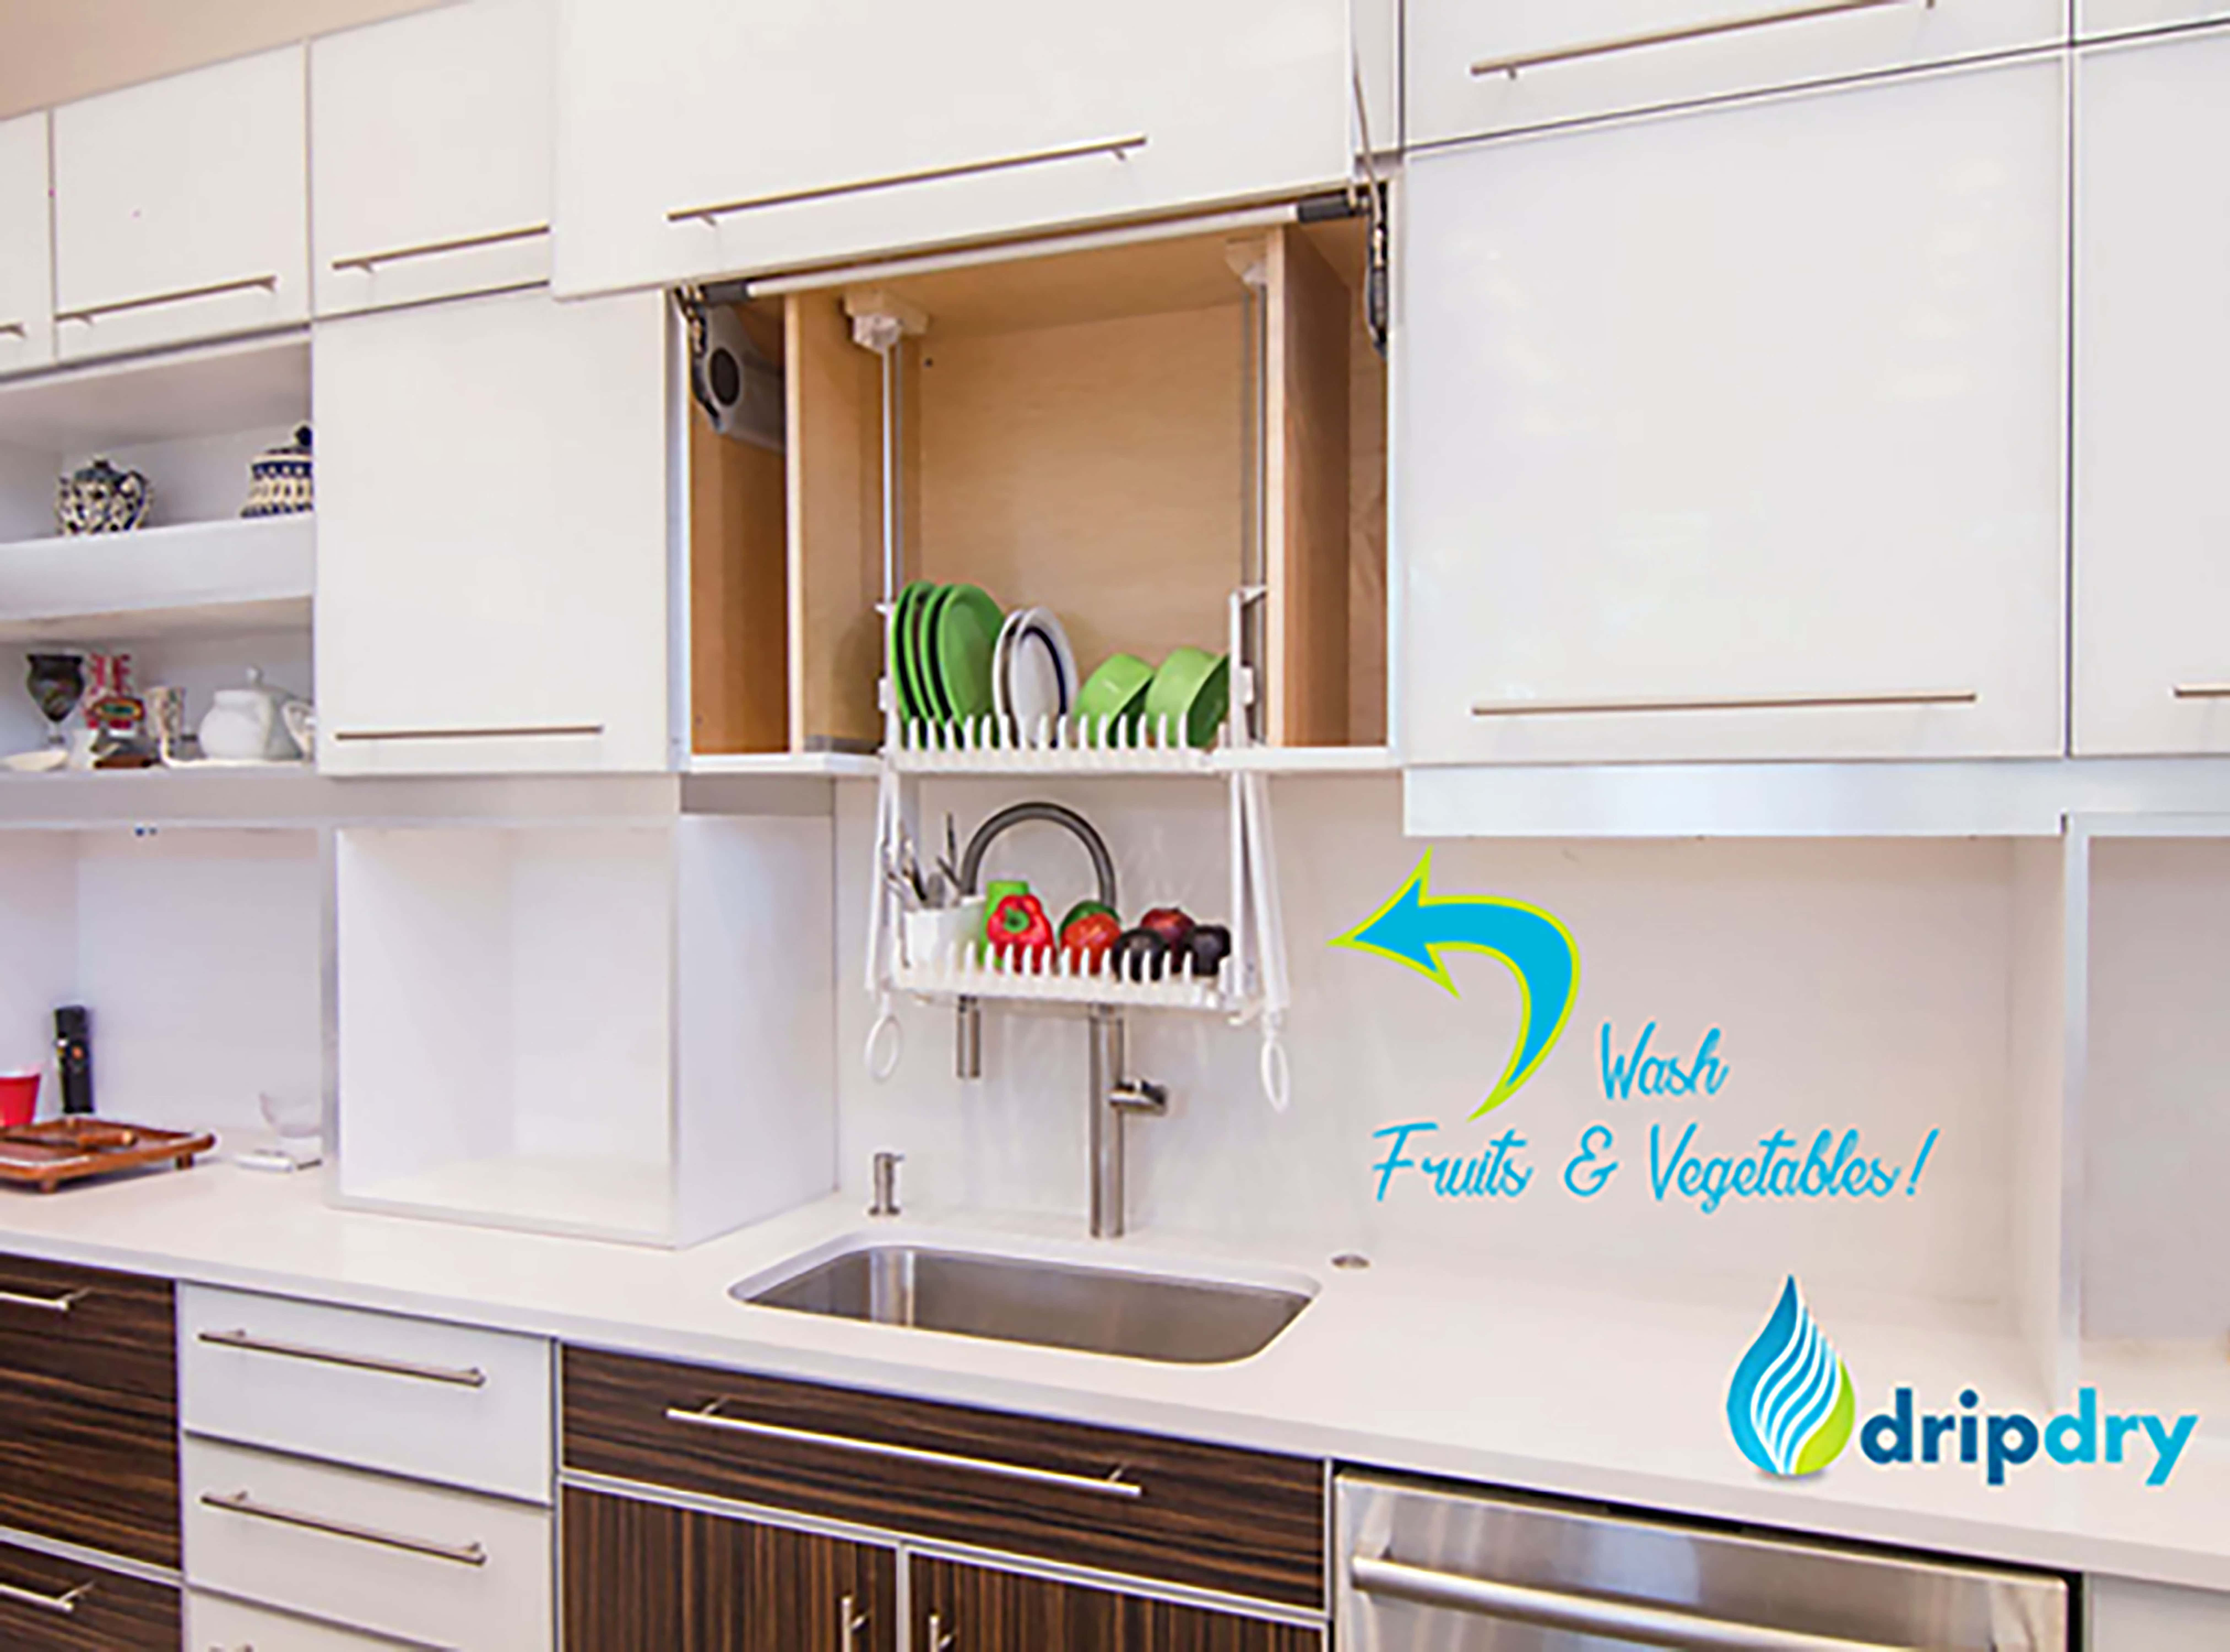 beautiful kitchen with The DripDry installed inside the cabinet